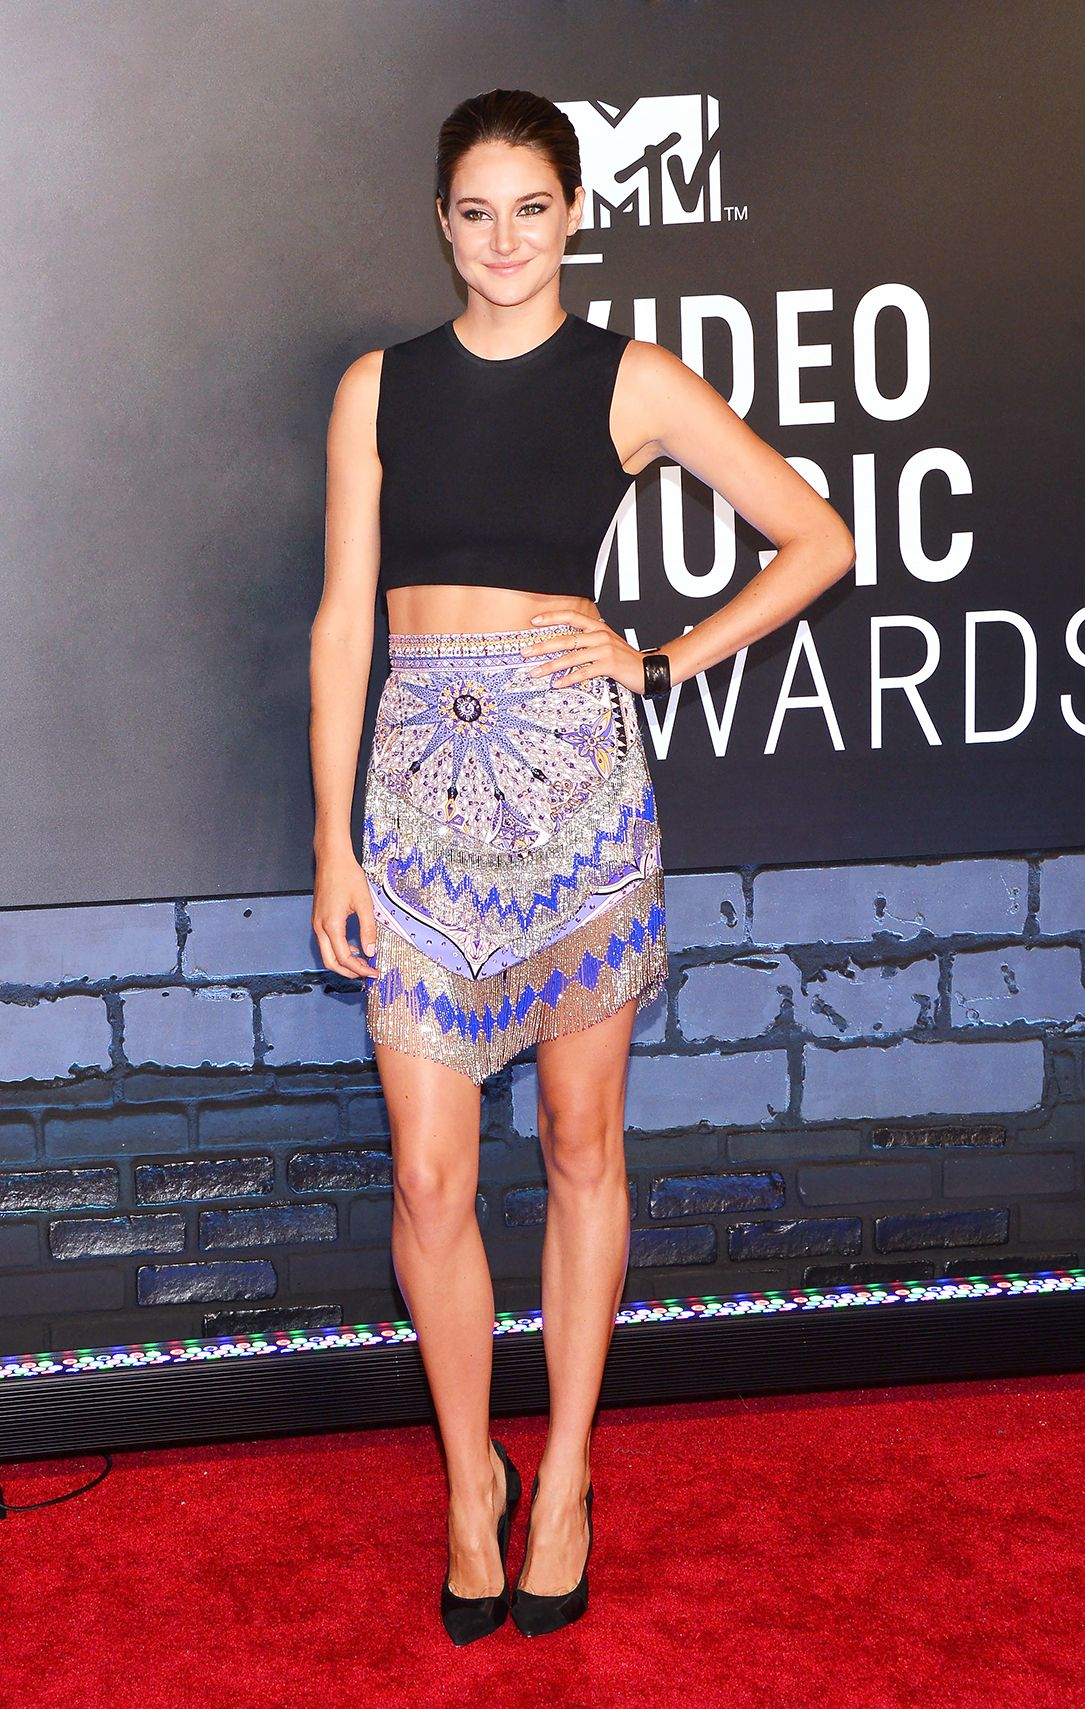 8 Reasons Why We Love Shailene Woodleys Style